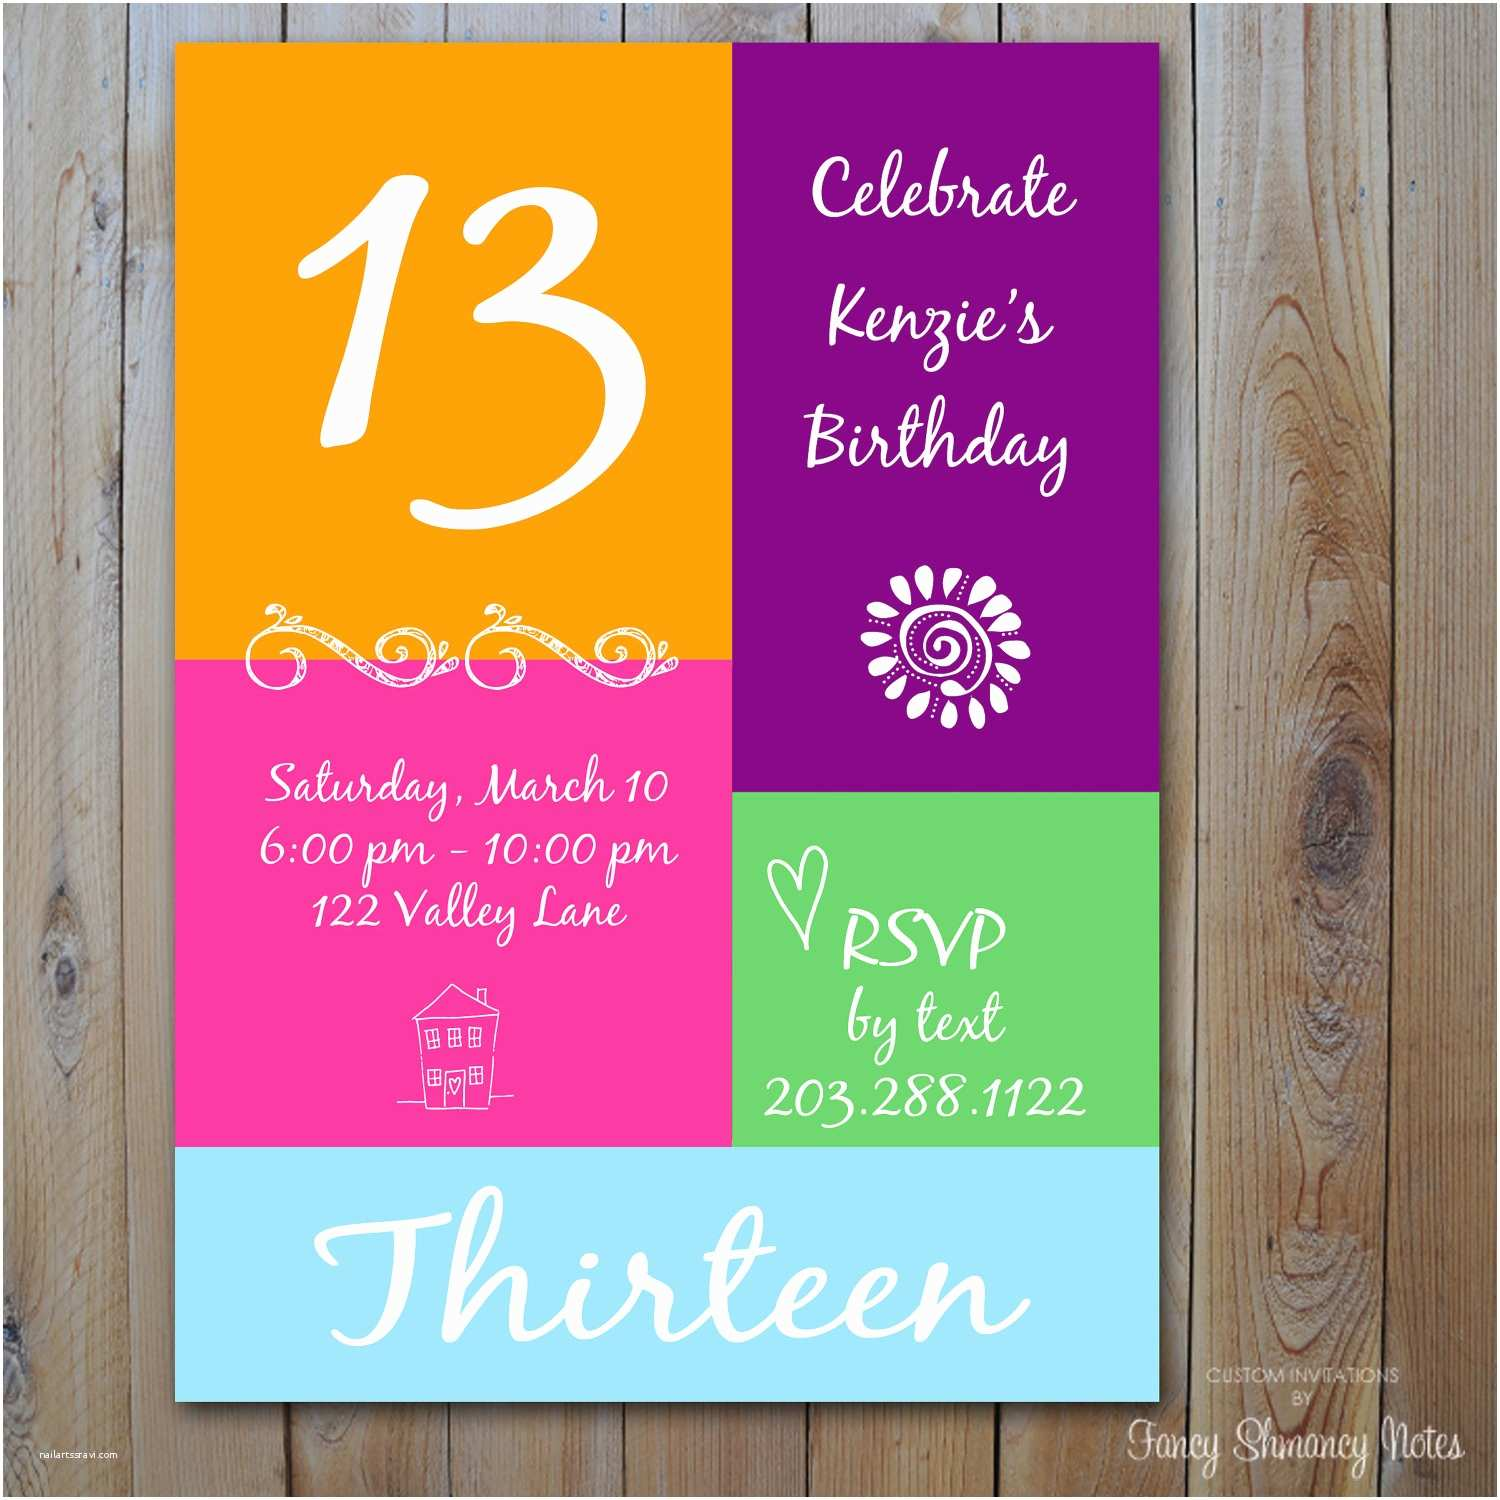 Party Invitations Online 13th Birthday Party Invitation Ideas – Bagvania Free